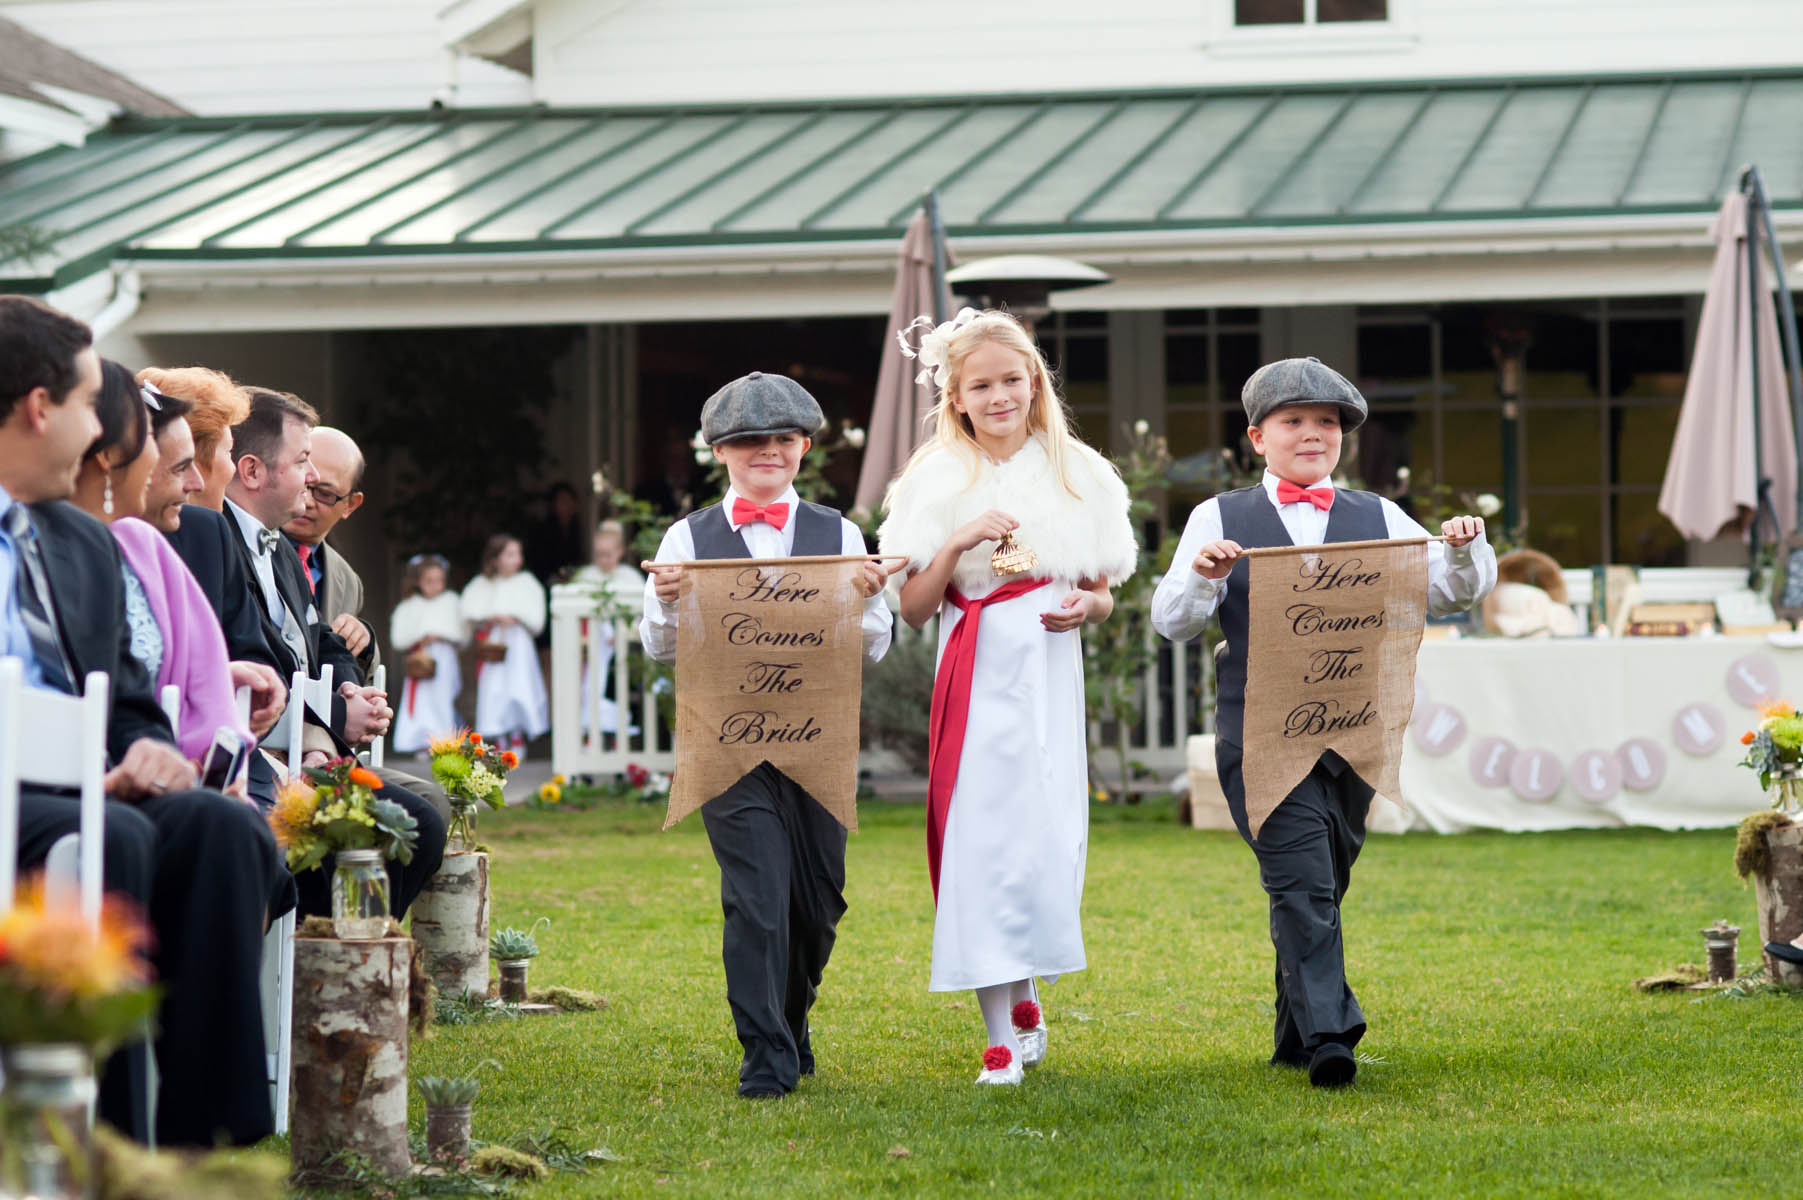 I love the vintage style of the ring bearers and flower girls!